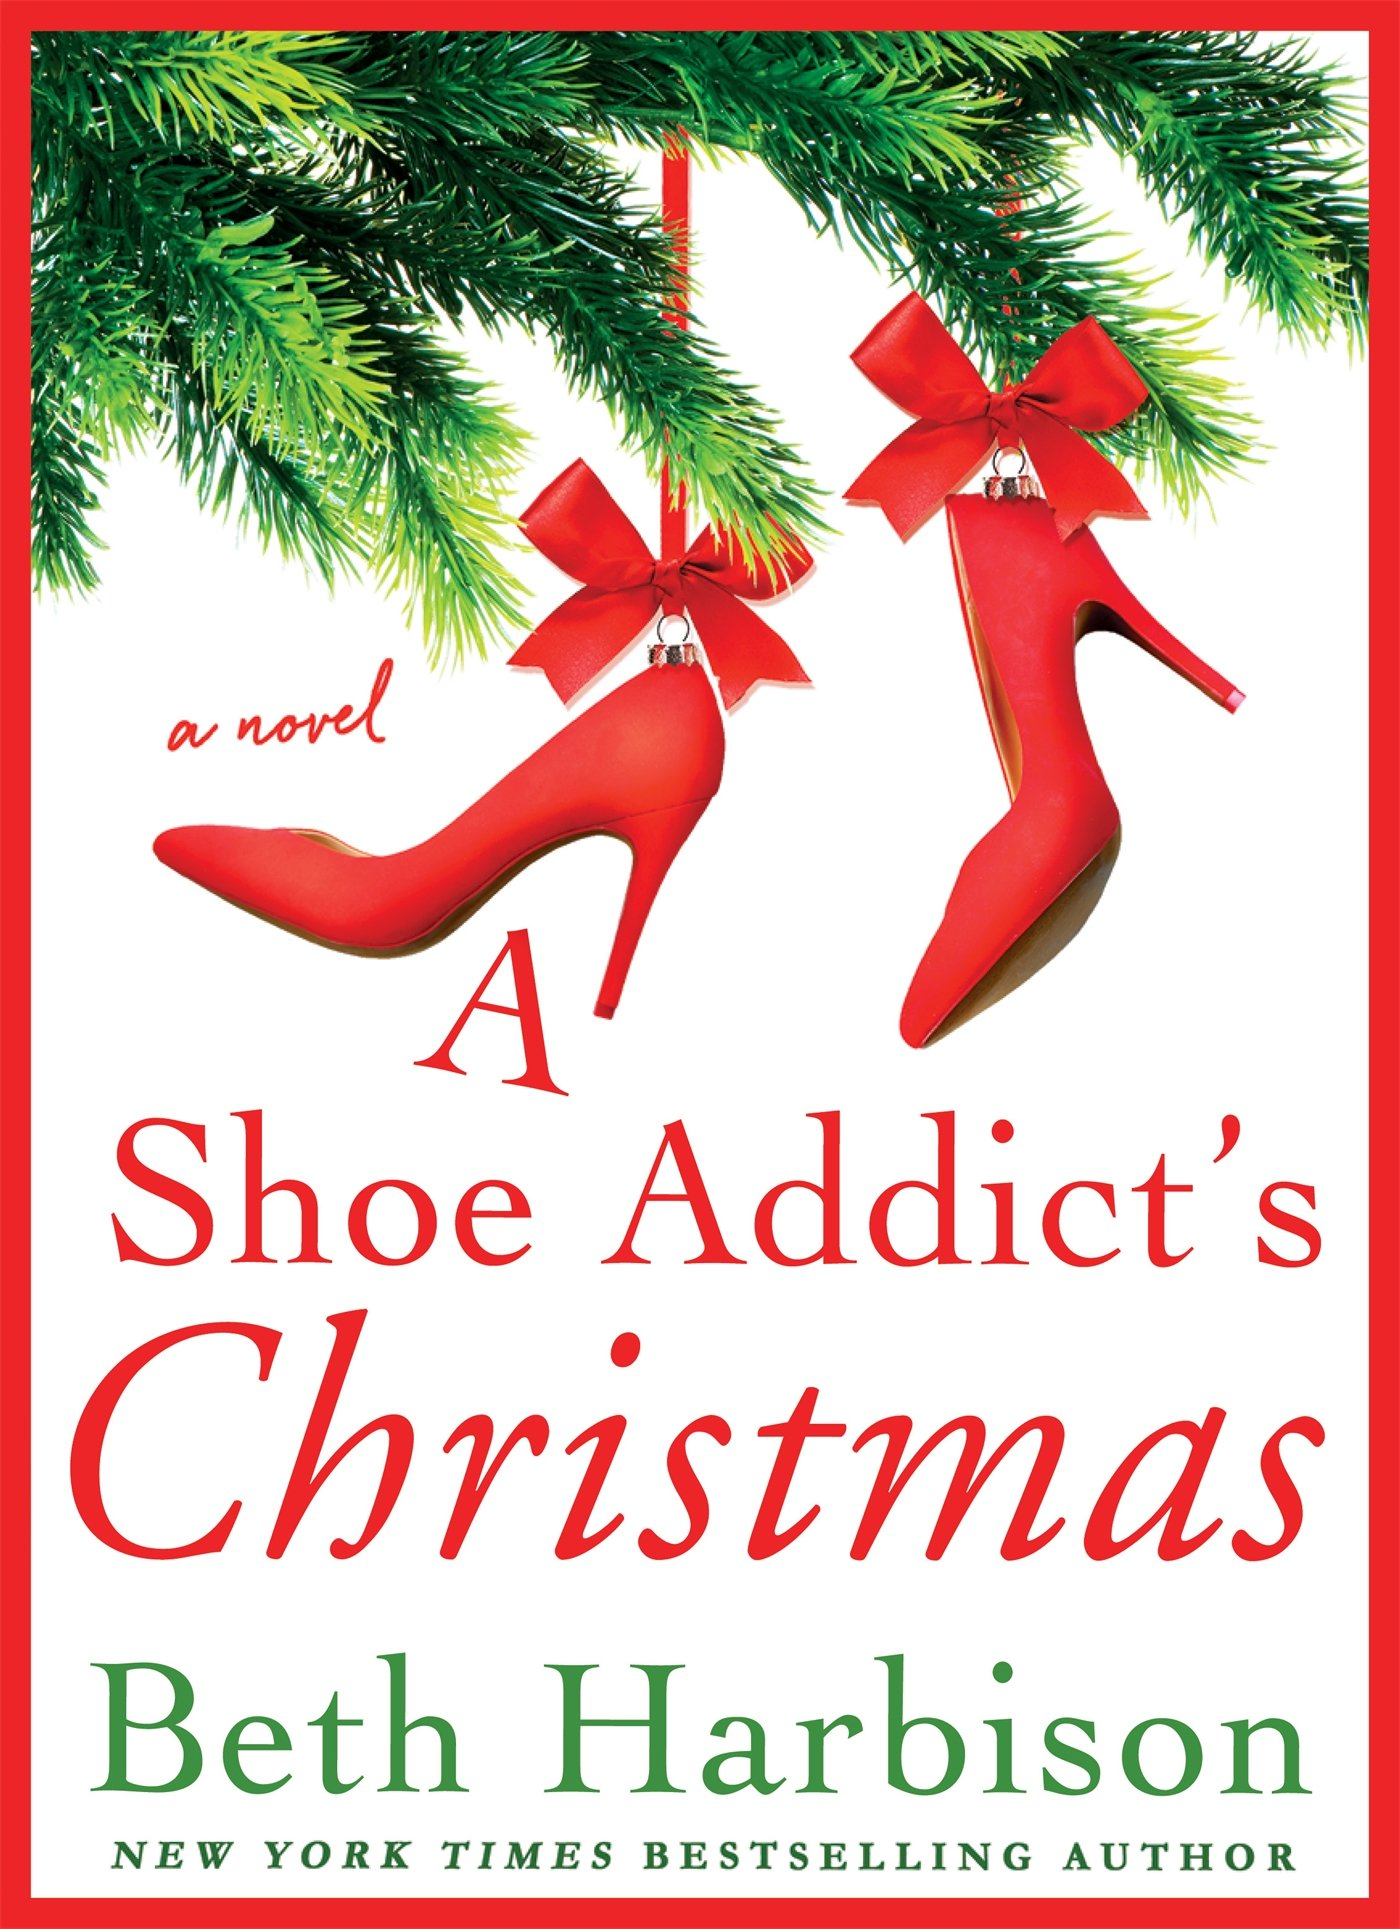 Christmas Shoe.A Shoe Addict S Christmas A Novel The Shoe Addict Series